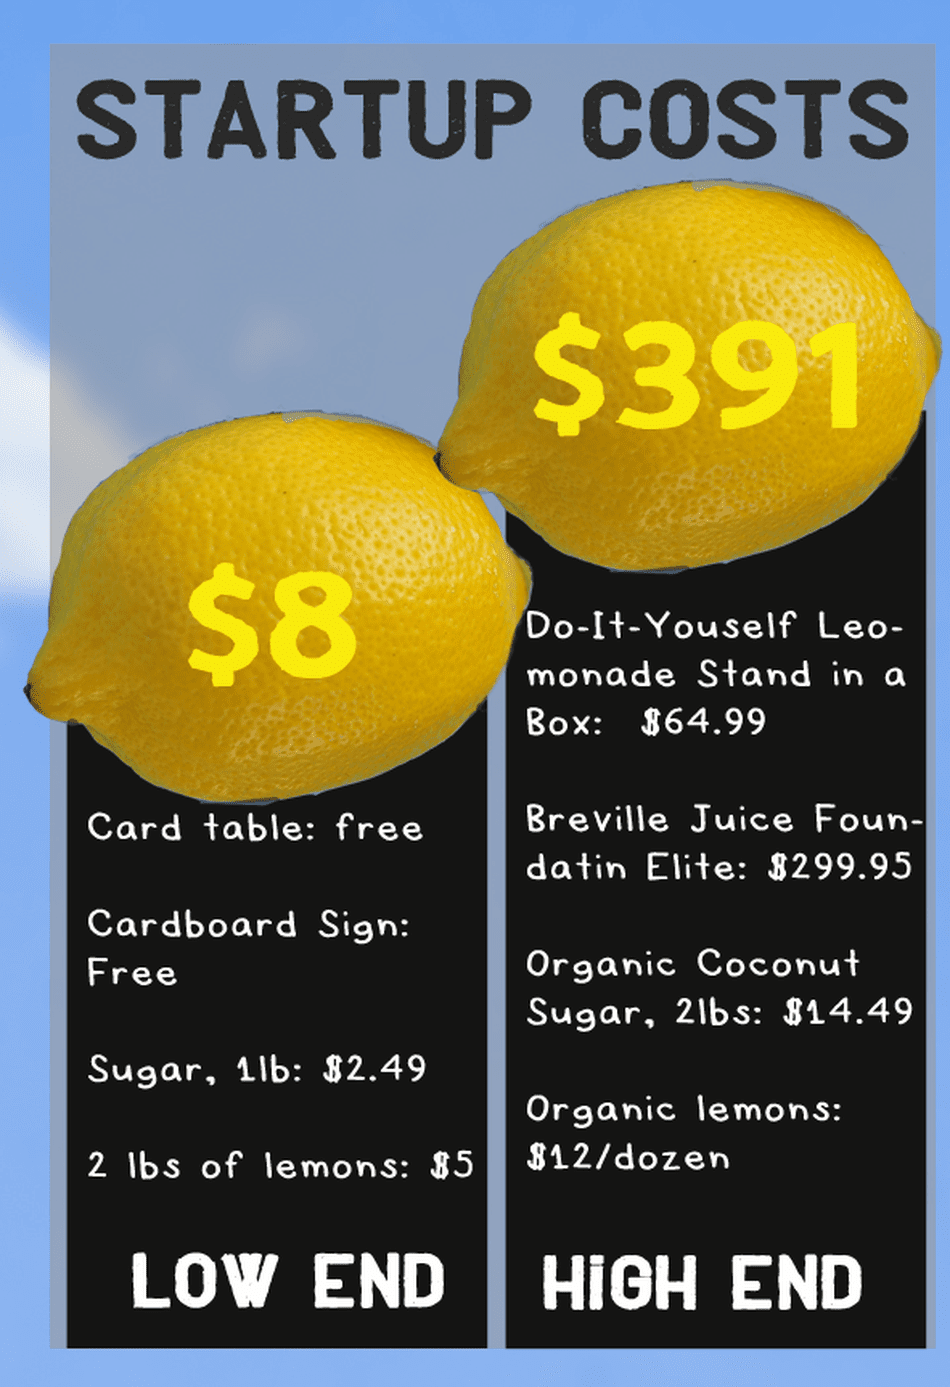 Economics of the Lemonade Stand - Startup Costs Graph